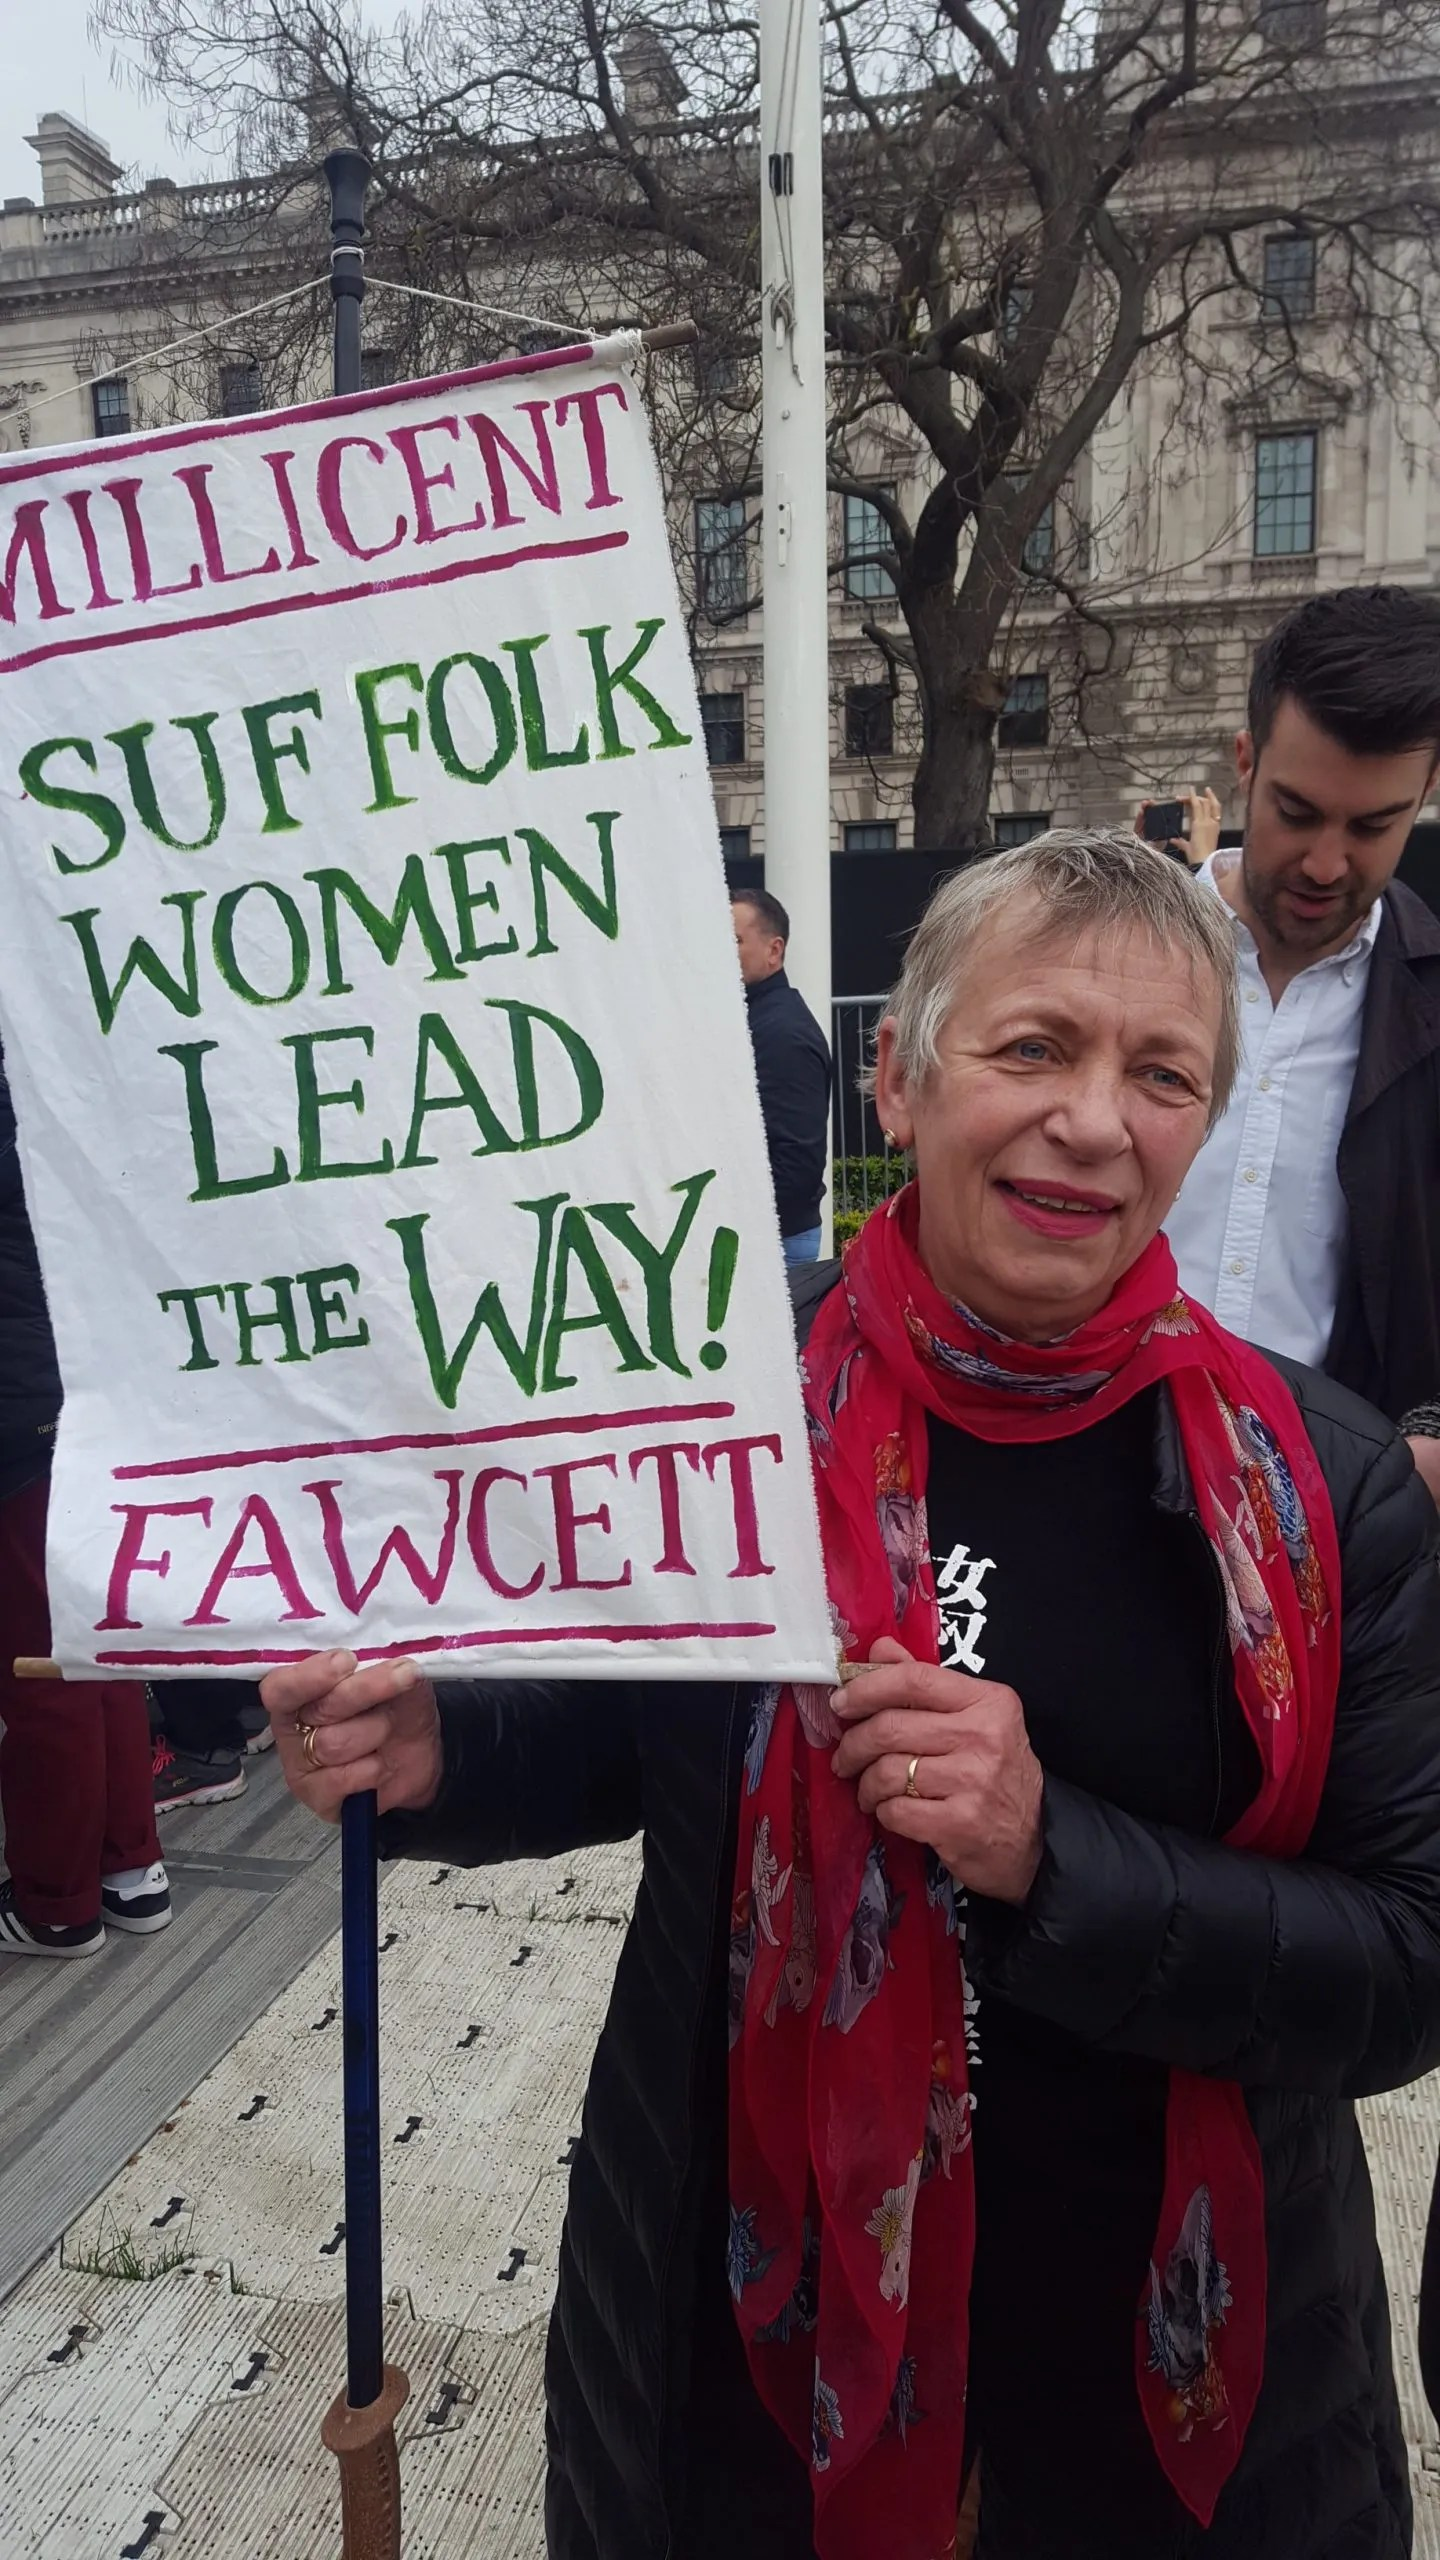 Millicent Fawcett Suffolk Women Lead the Way banner